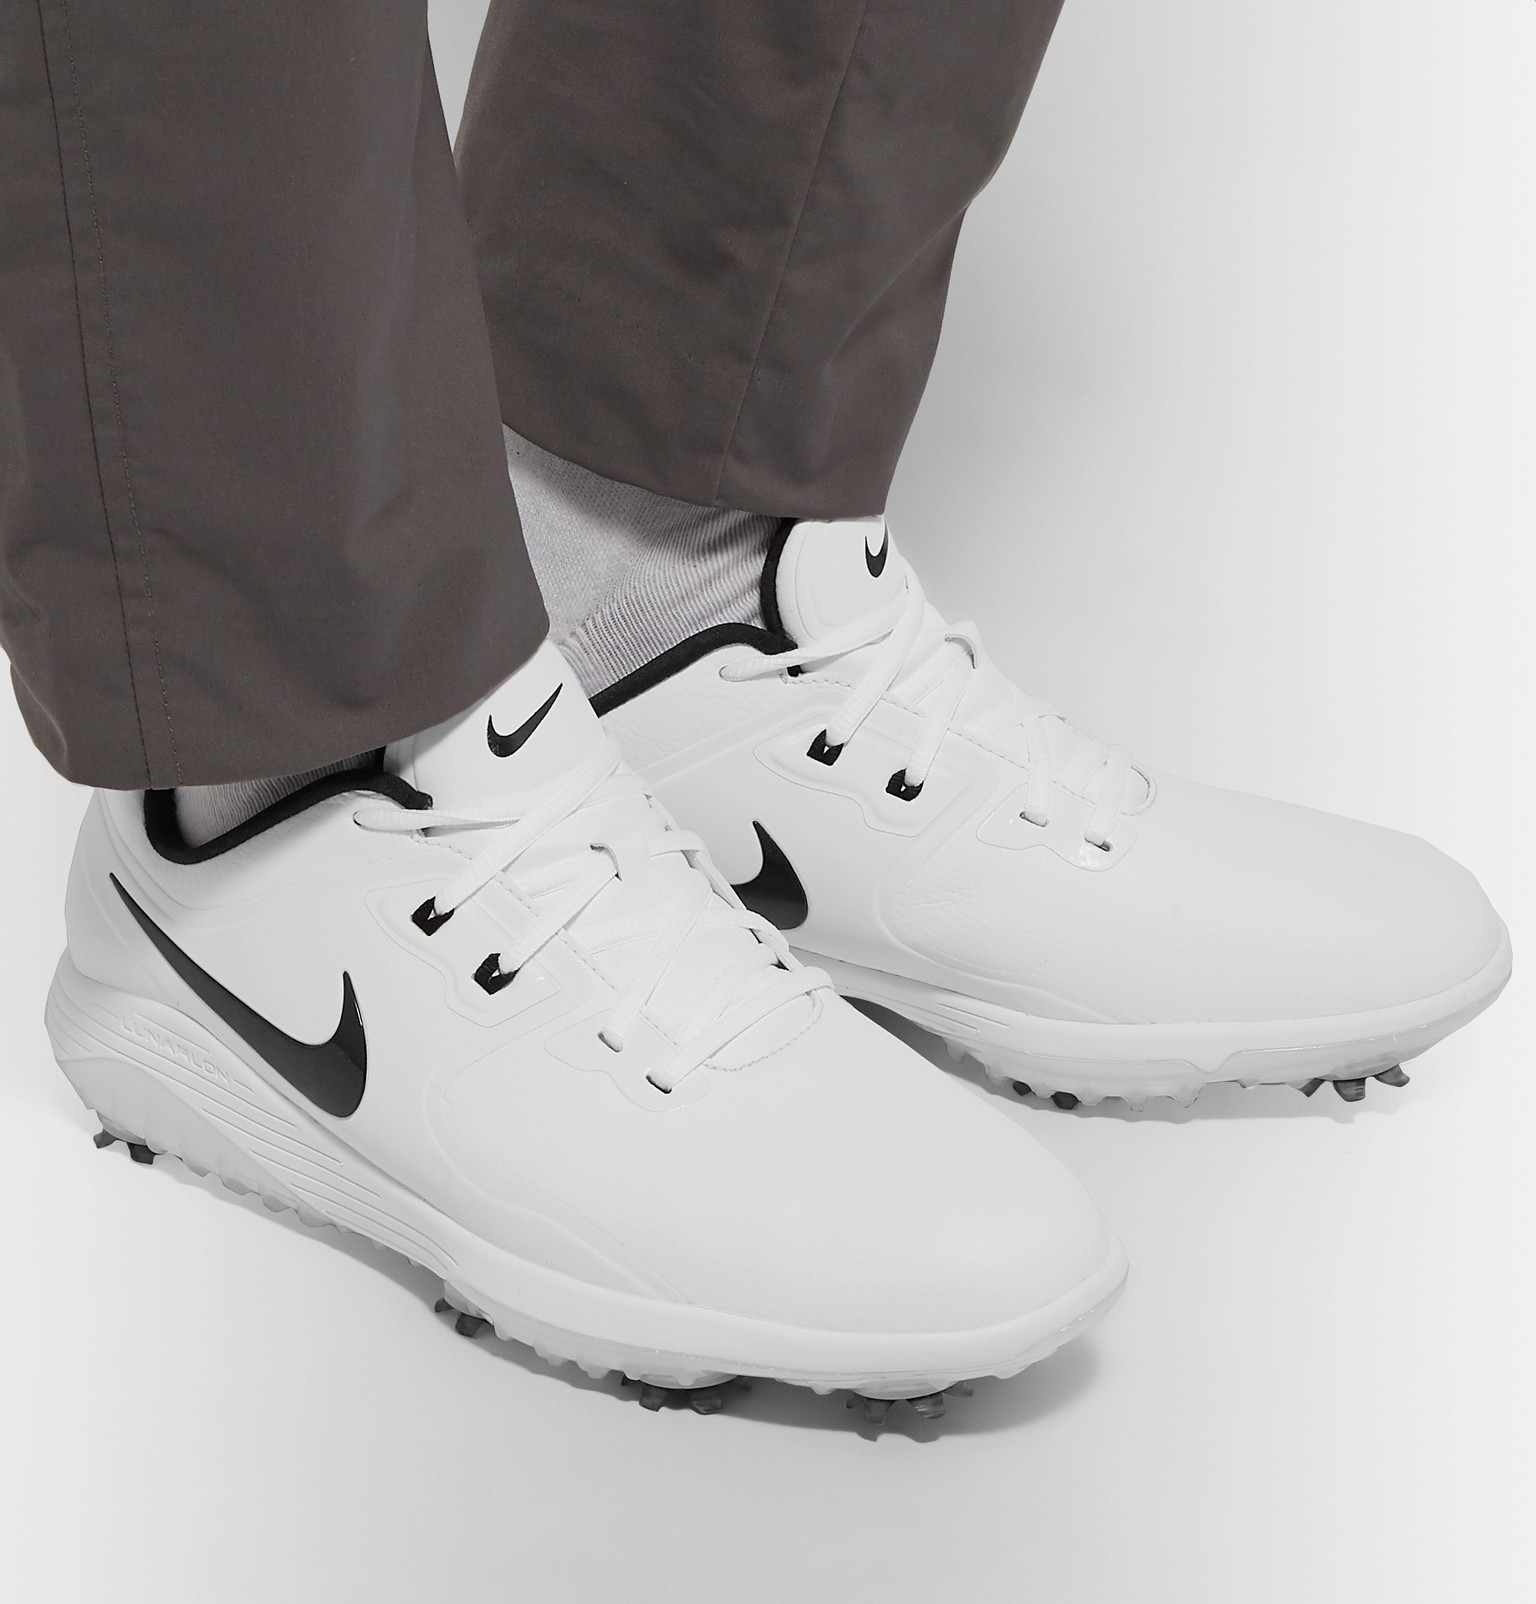 a5ed589e2e31e Nike Golf - Vapor Pro Full-Grain Leather Golf Shoes